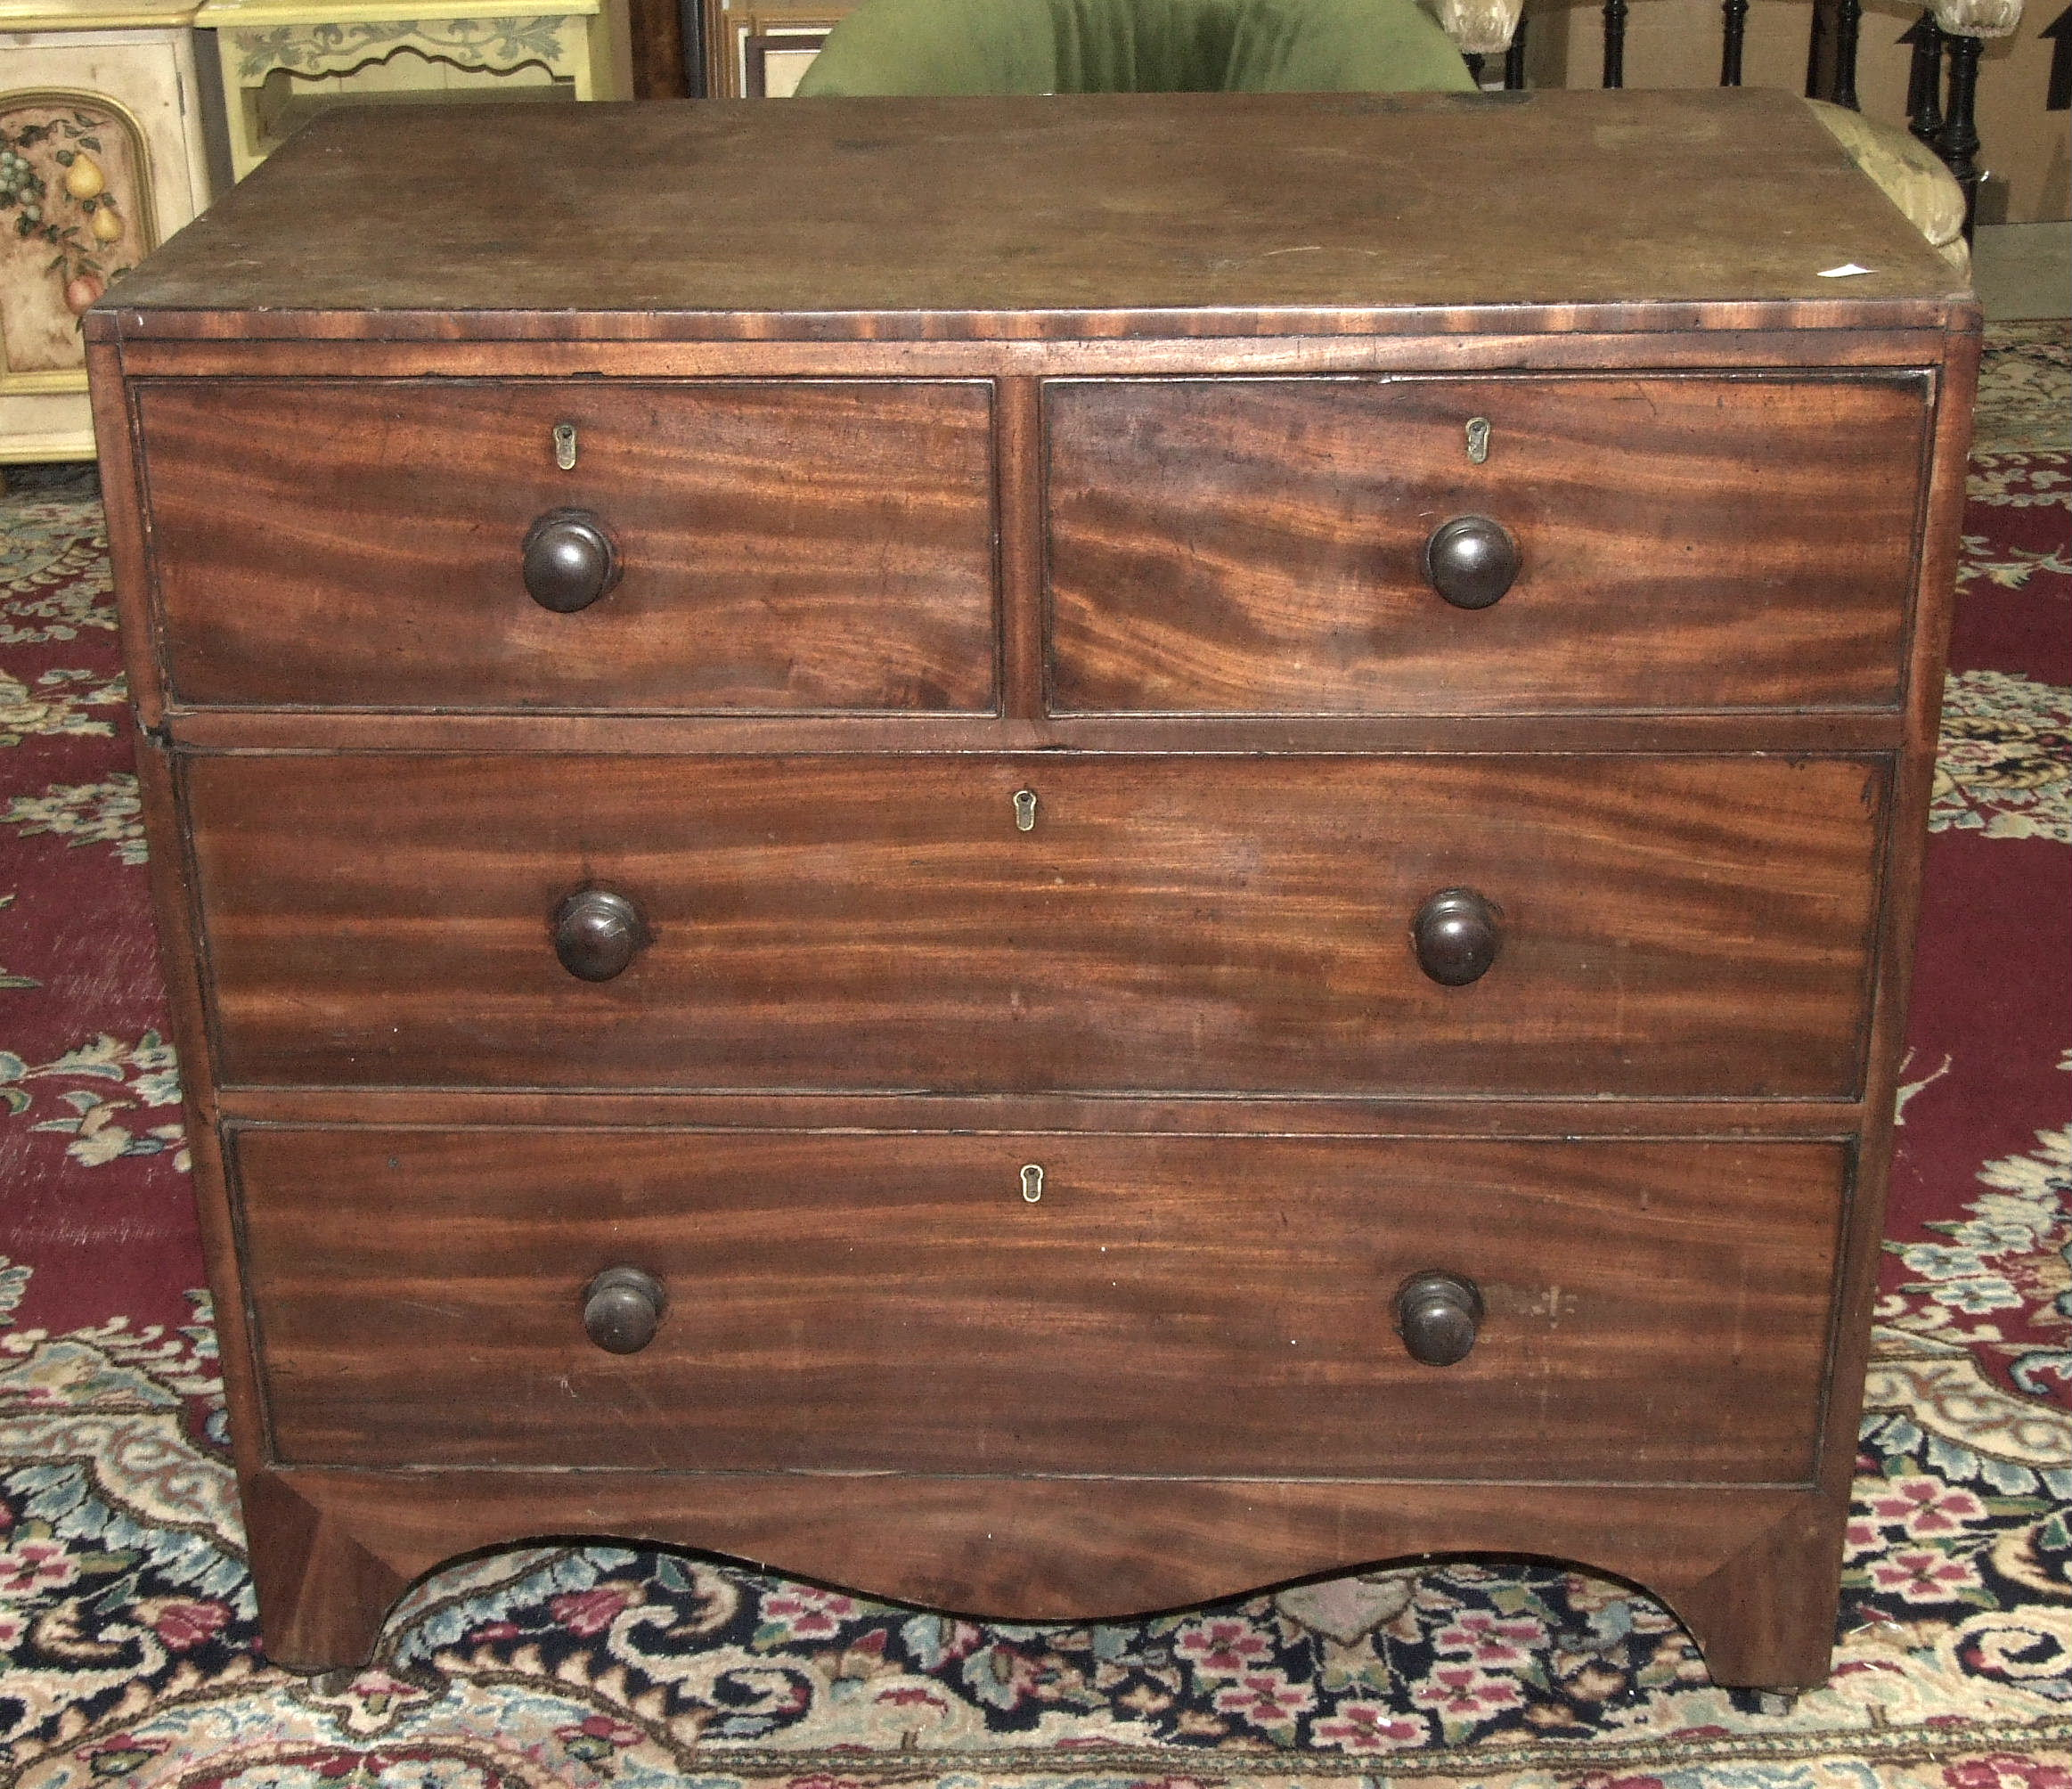 Lot 22 - A 19th century mahogany straight front chest of two short and two long drawers on bracket feet, 92cm